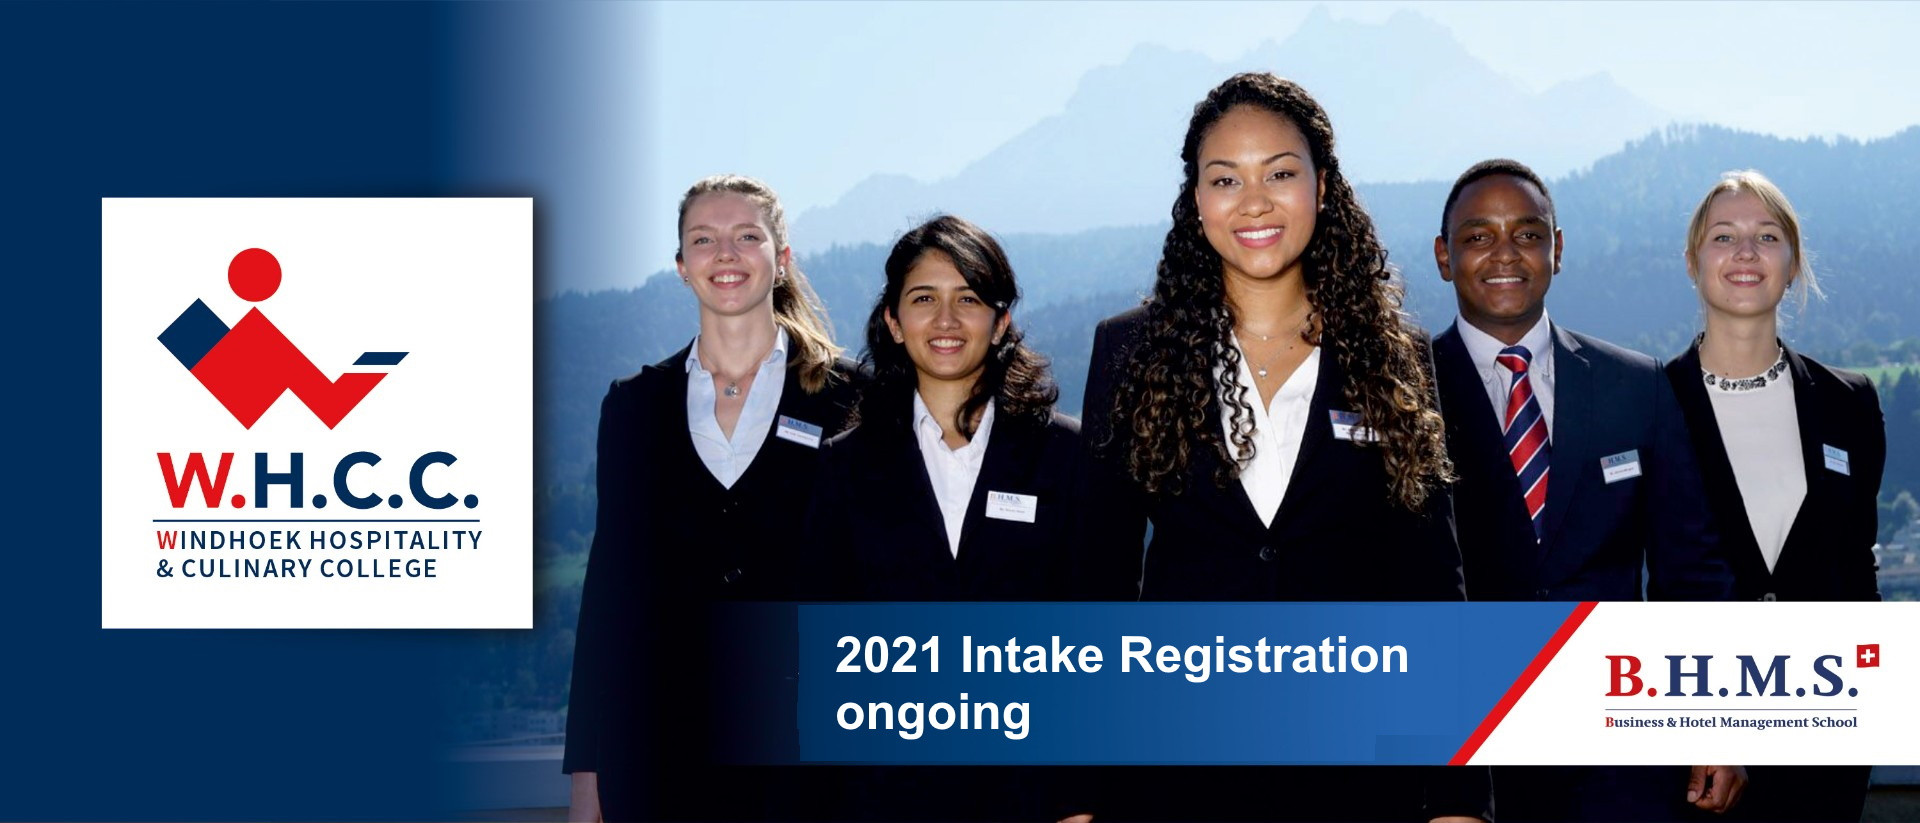 2021 Intake Registration Ongoing